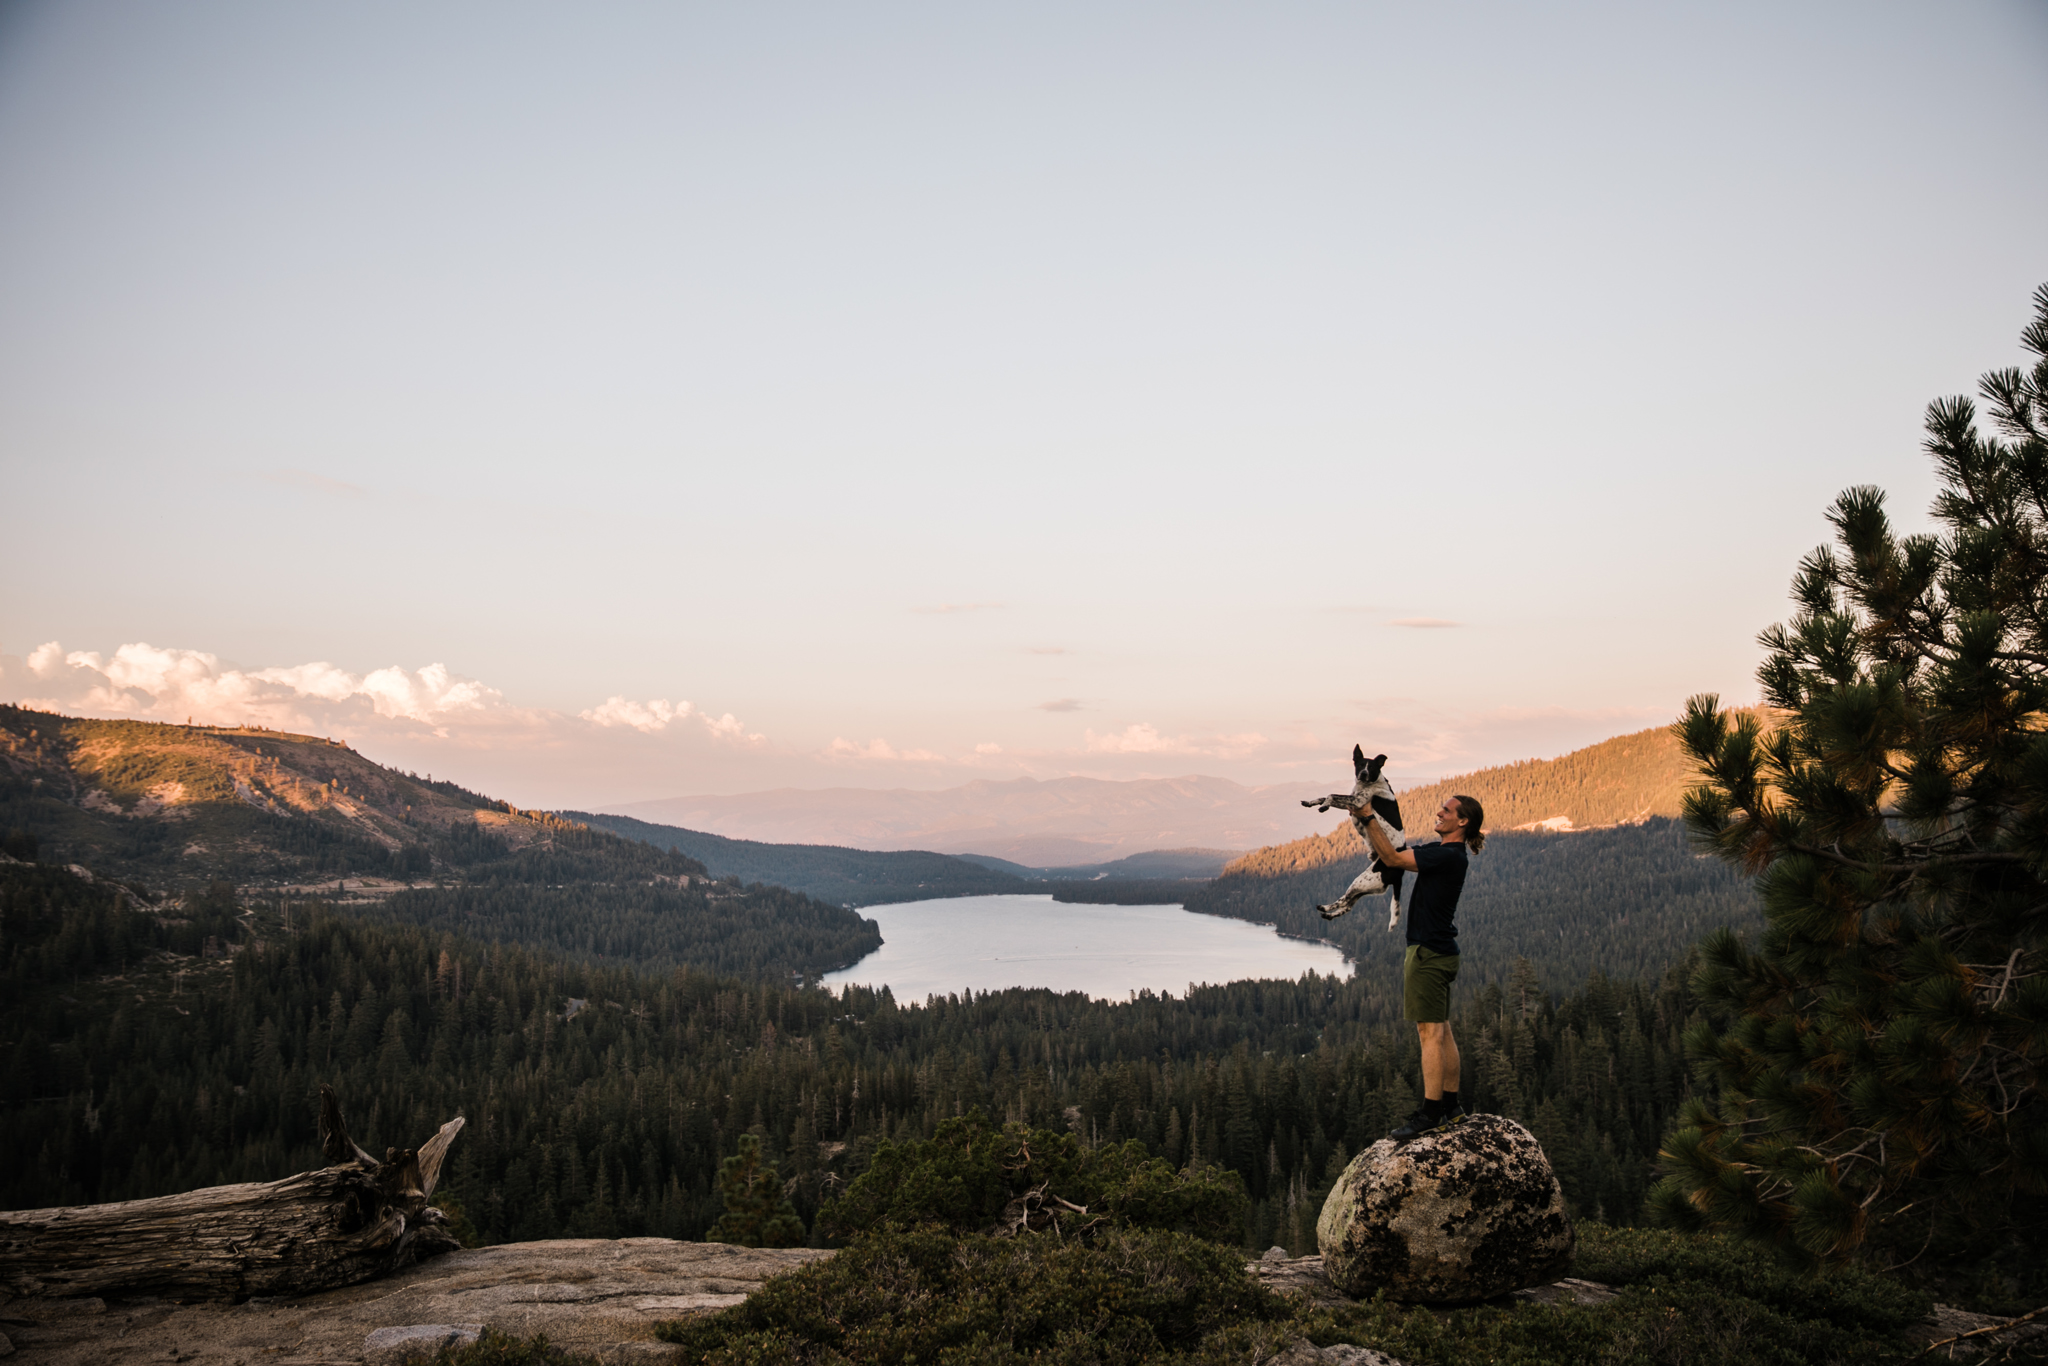 donner lake sunset | utah and california adventure elopement photographers | the hearnes adventure photography | www.thehearnes.com